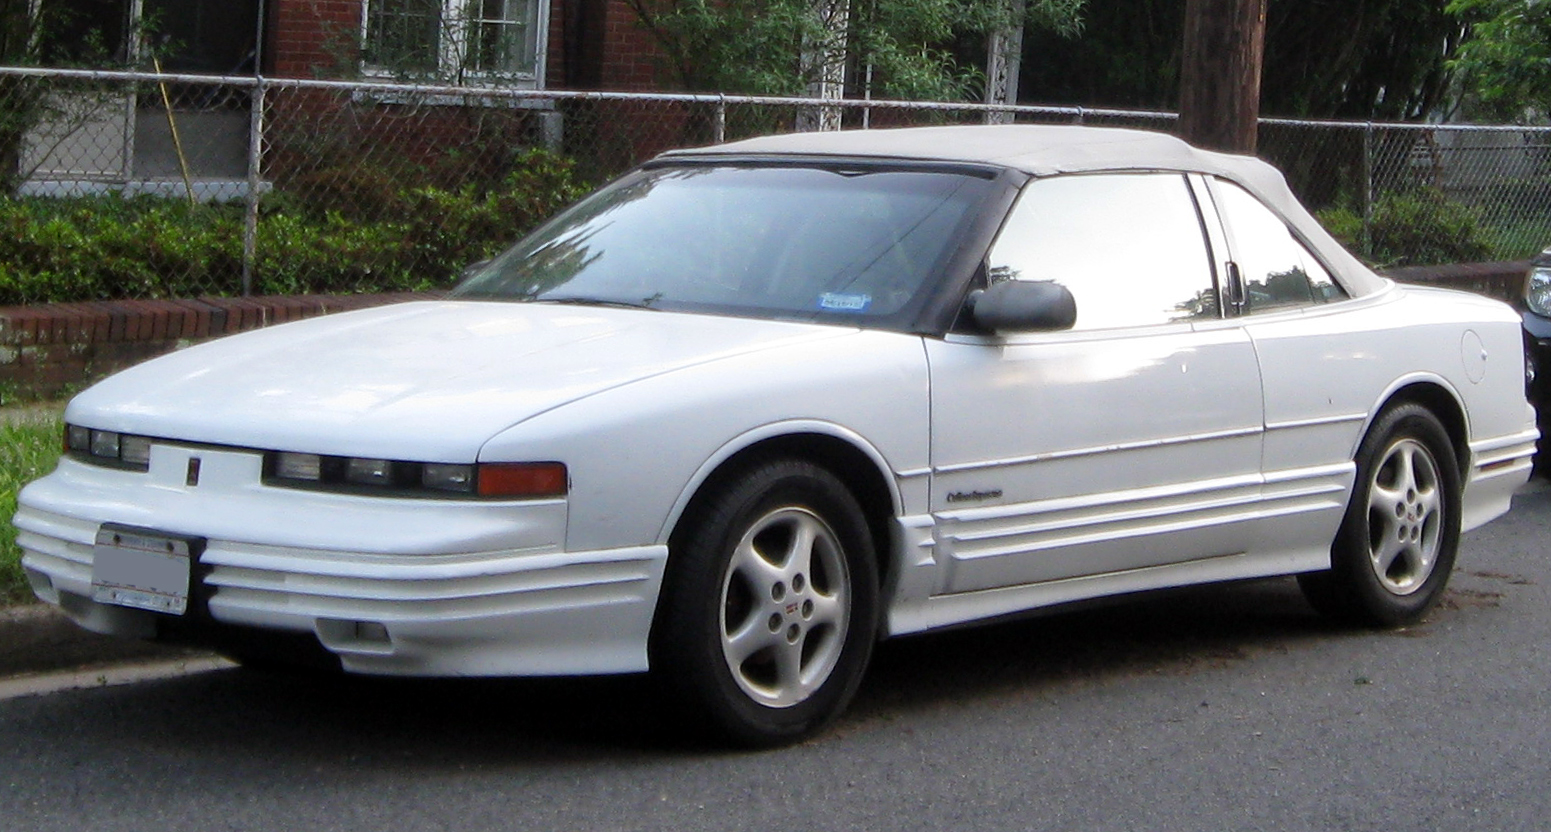 1997 Oldsmobile Cutlass Supreme #4